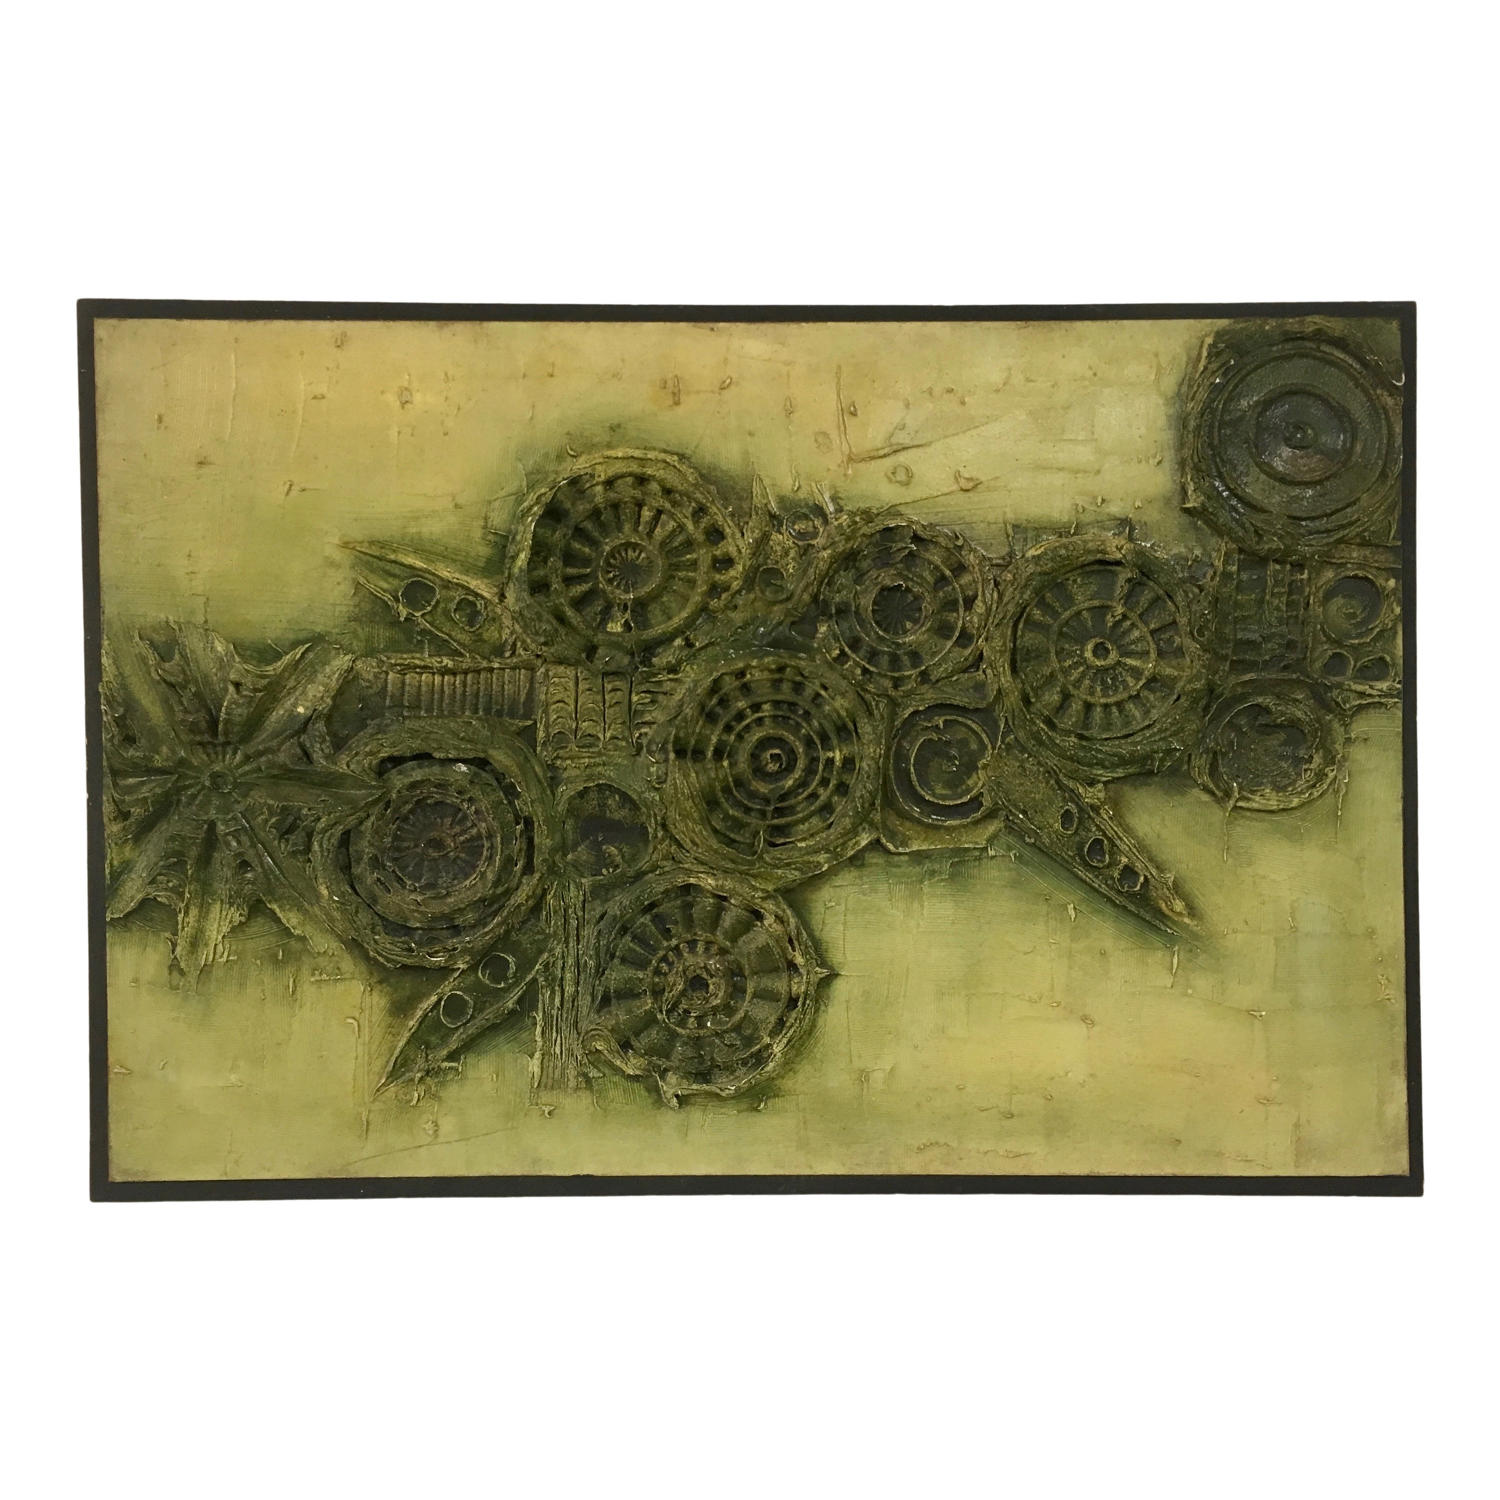 1970s abstract textured painting